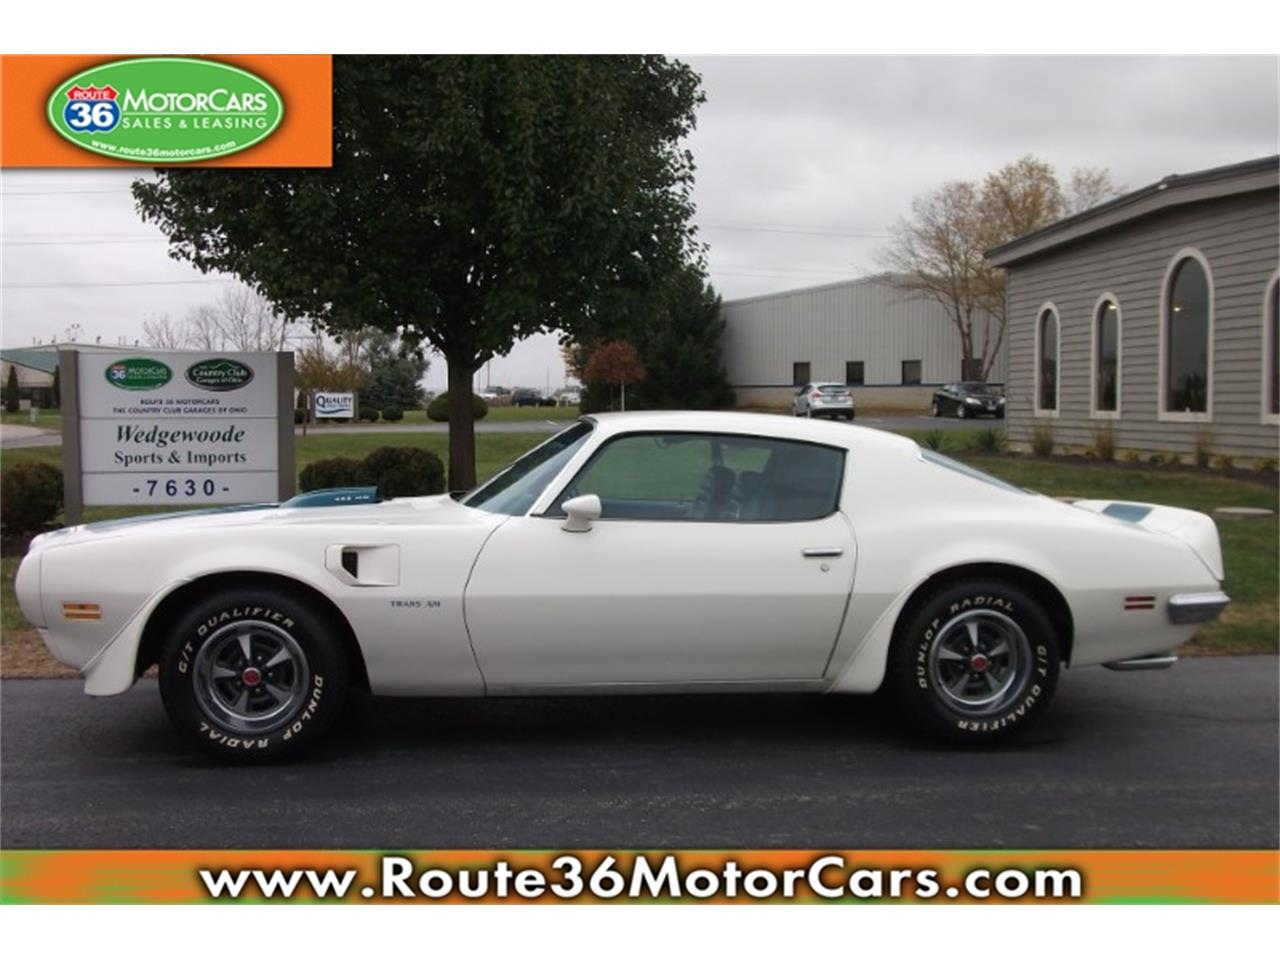 Large Picture of Classic 1972 Pontiac Firebird - $54,975.00 Offered by Route 36 Motor Cars - IKH6